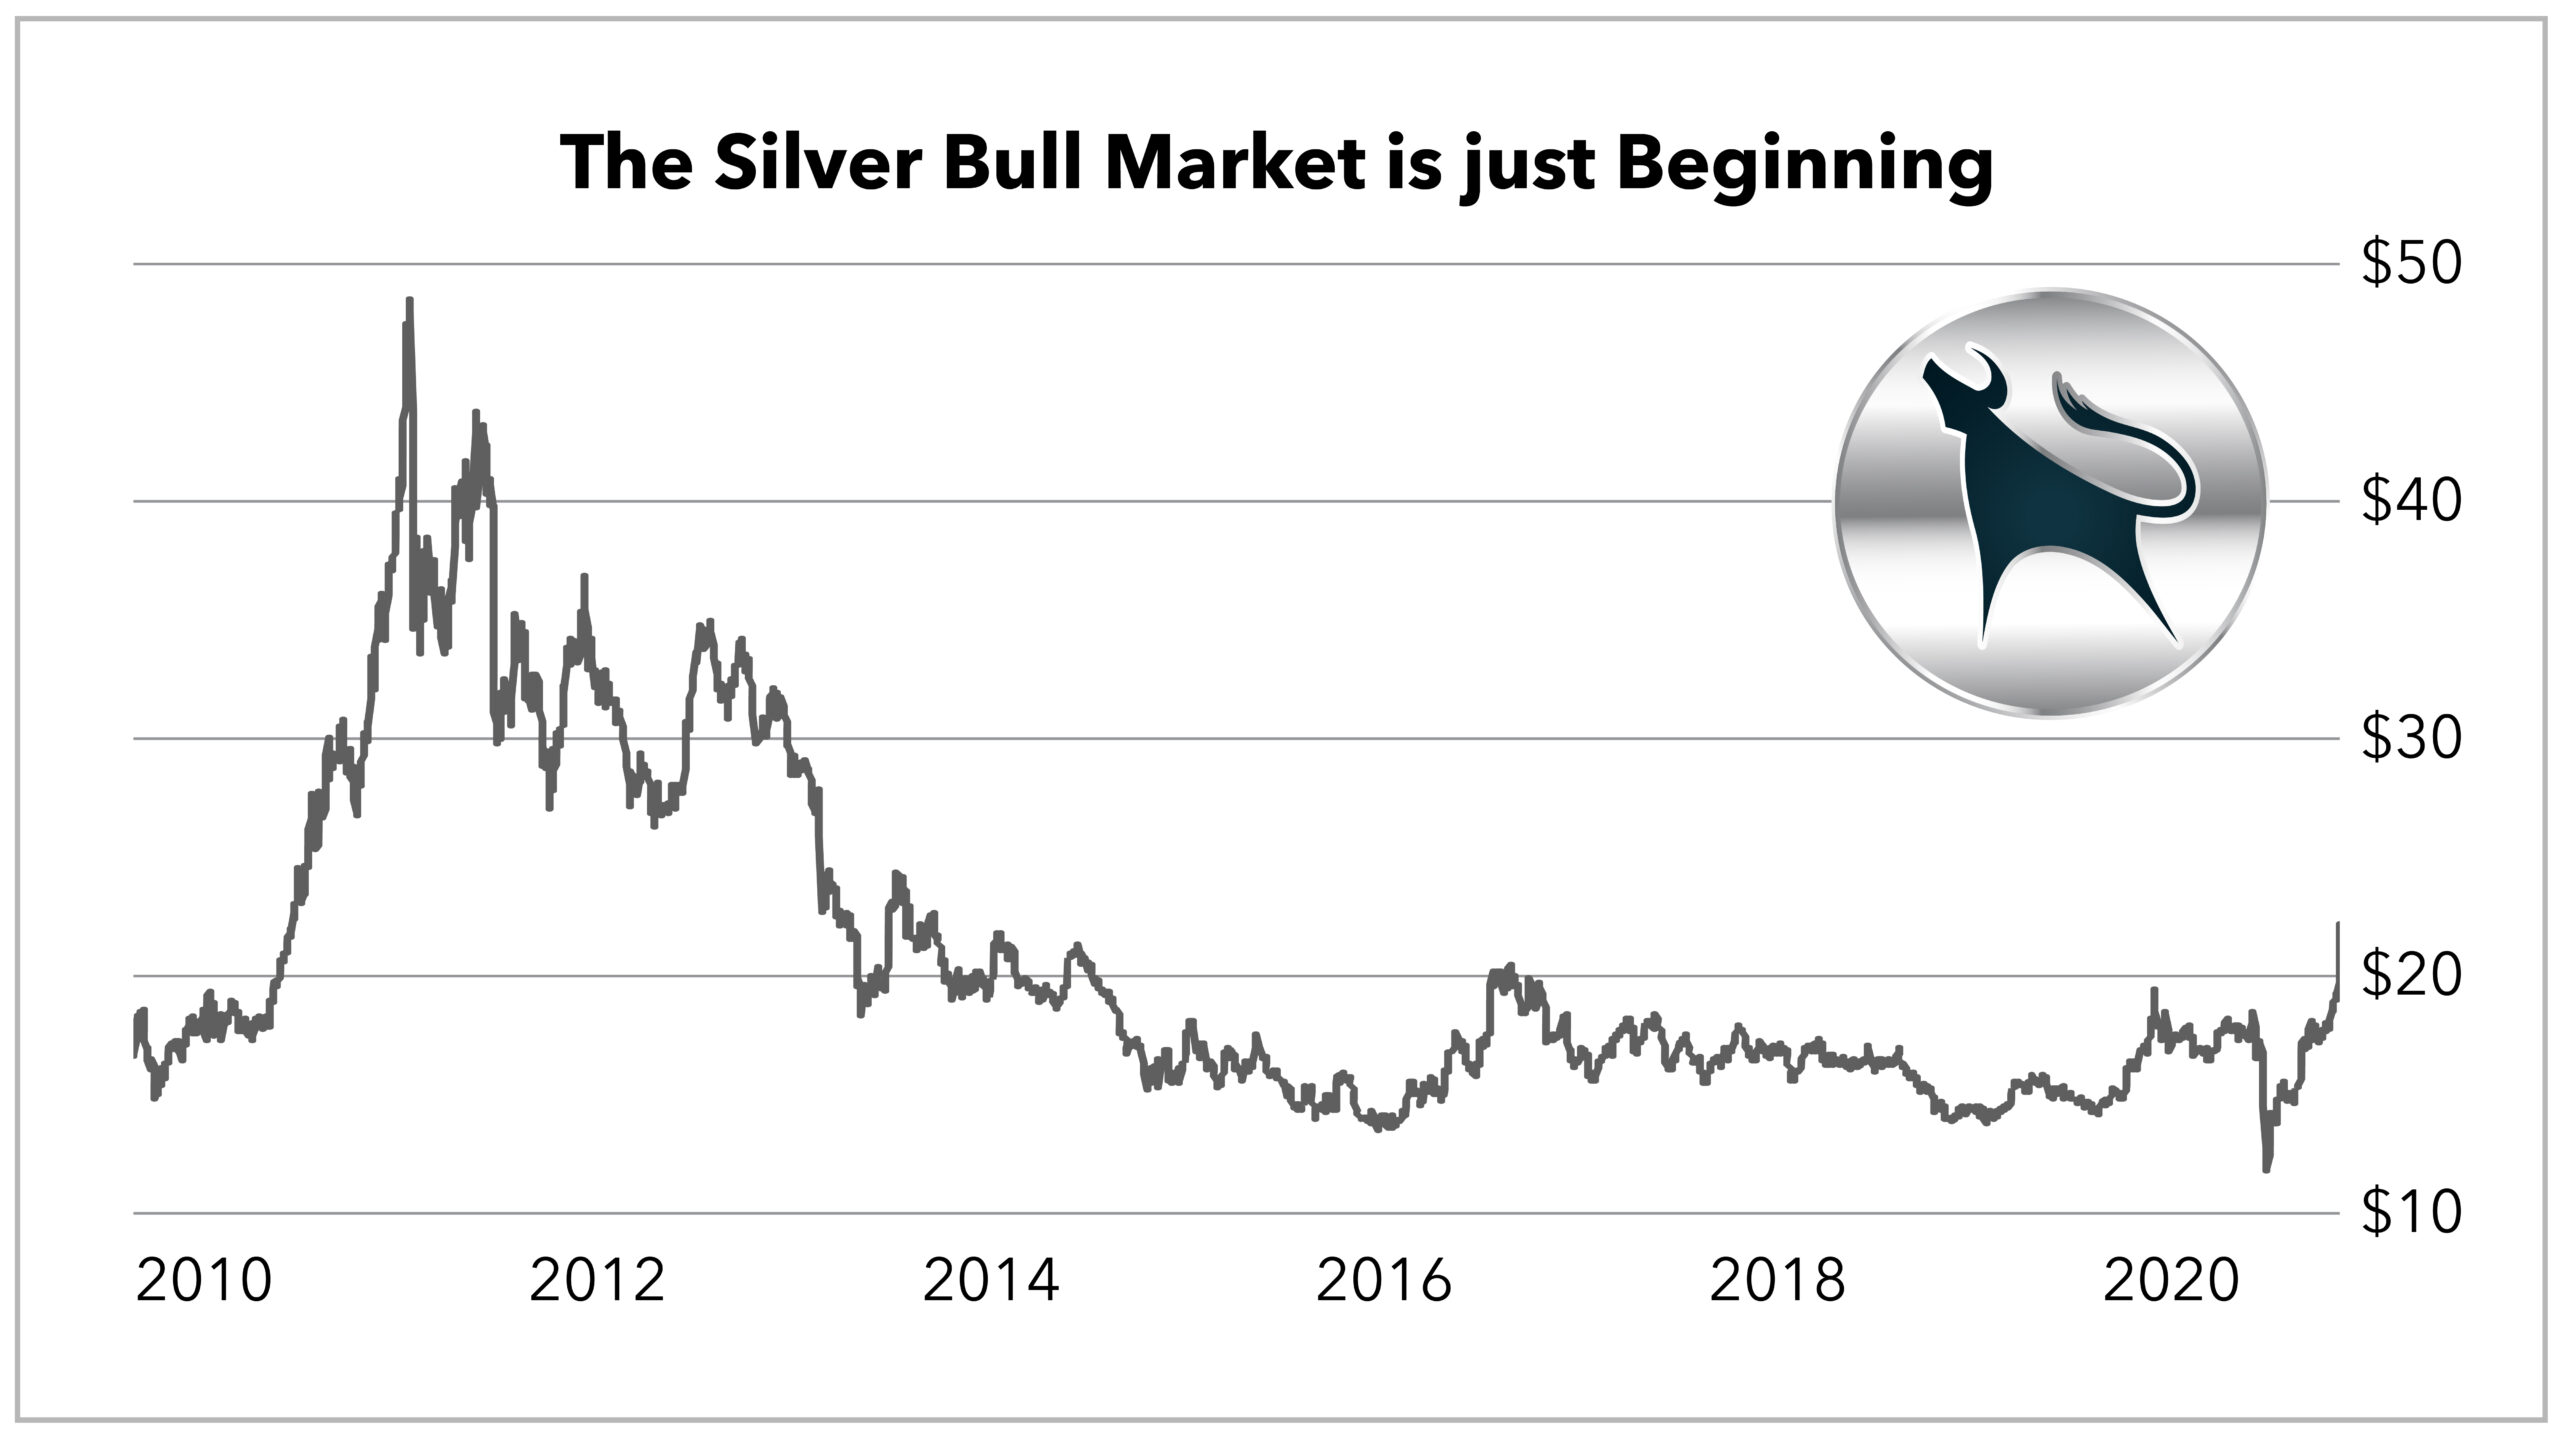 Chart showing that the price of an ounce of silver has gone up significantly the past few weeks, but it still has a way to go before it hits its all-time highs.